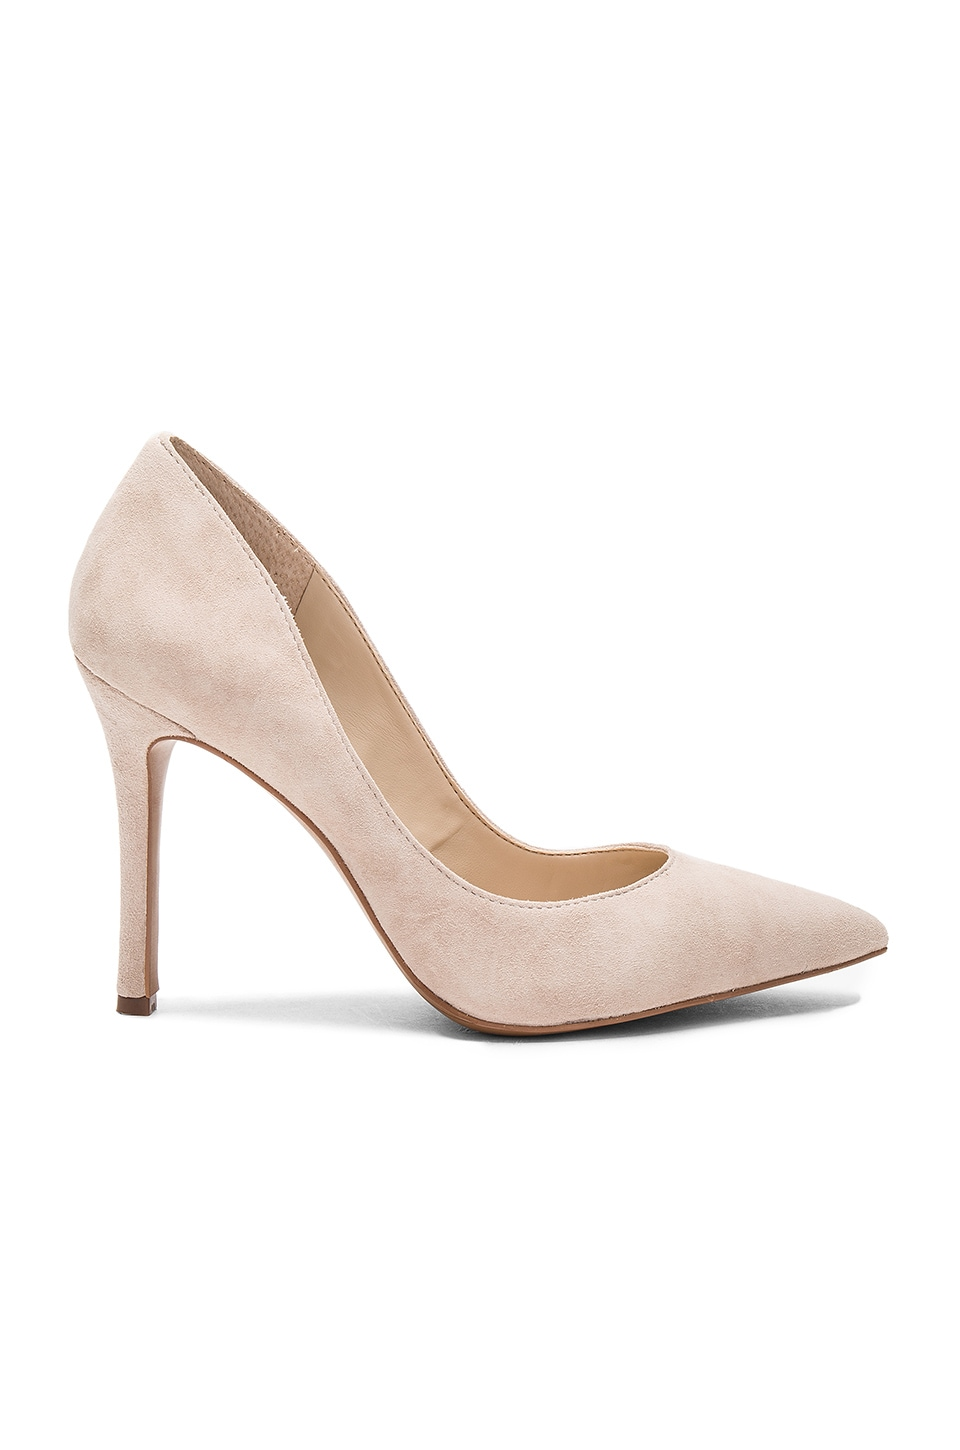 BCBGeneration Treasure Pump in Bare Pink Kidsuede